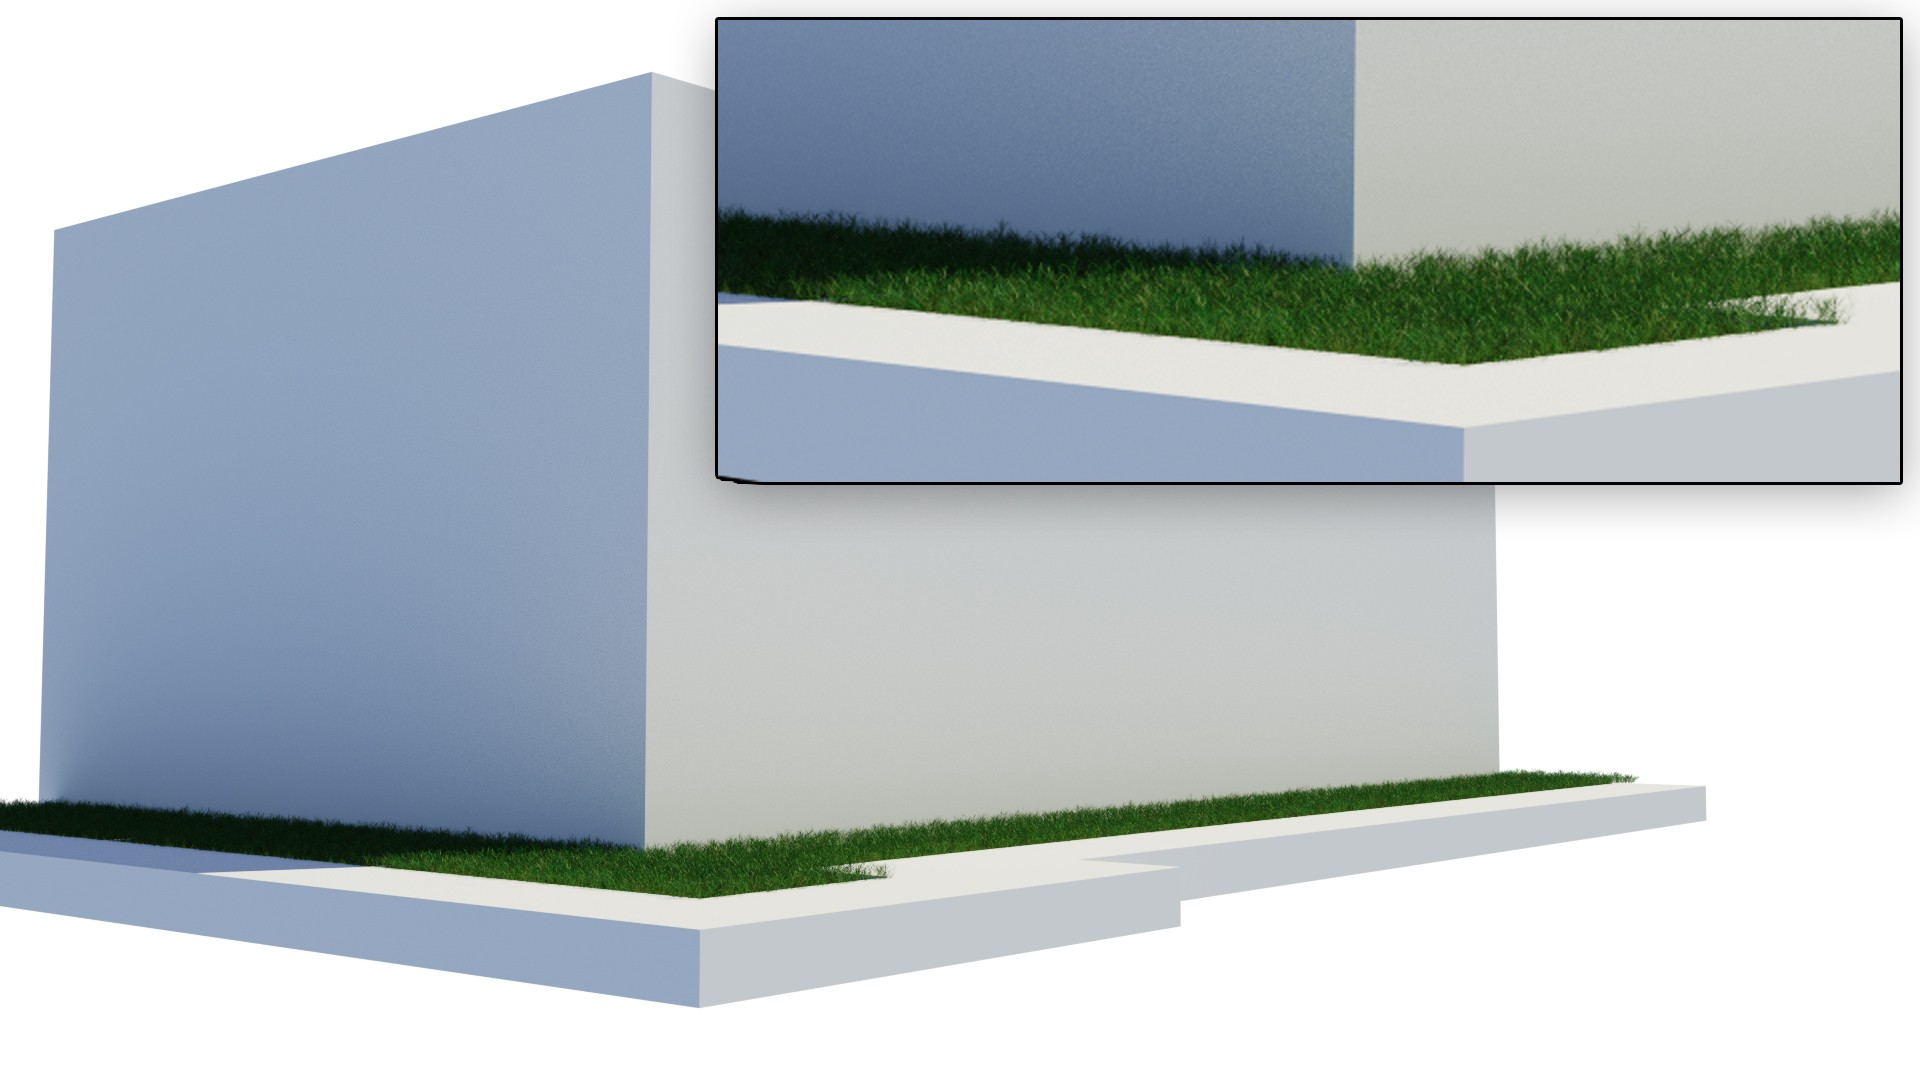 Microdisplacement for Grass in Blender - Brennan Letkeman